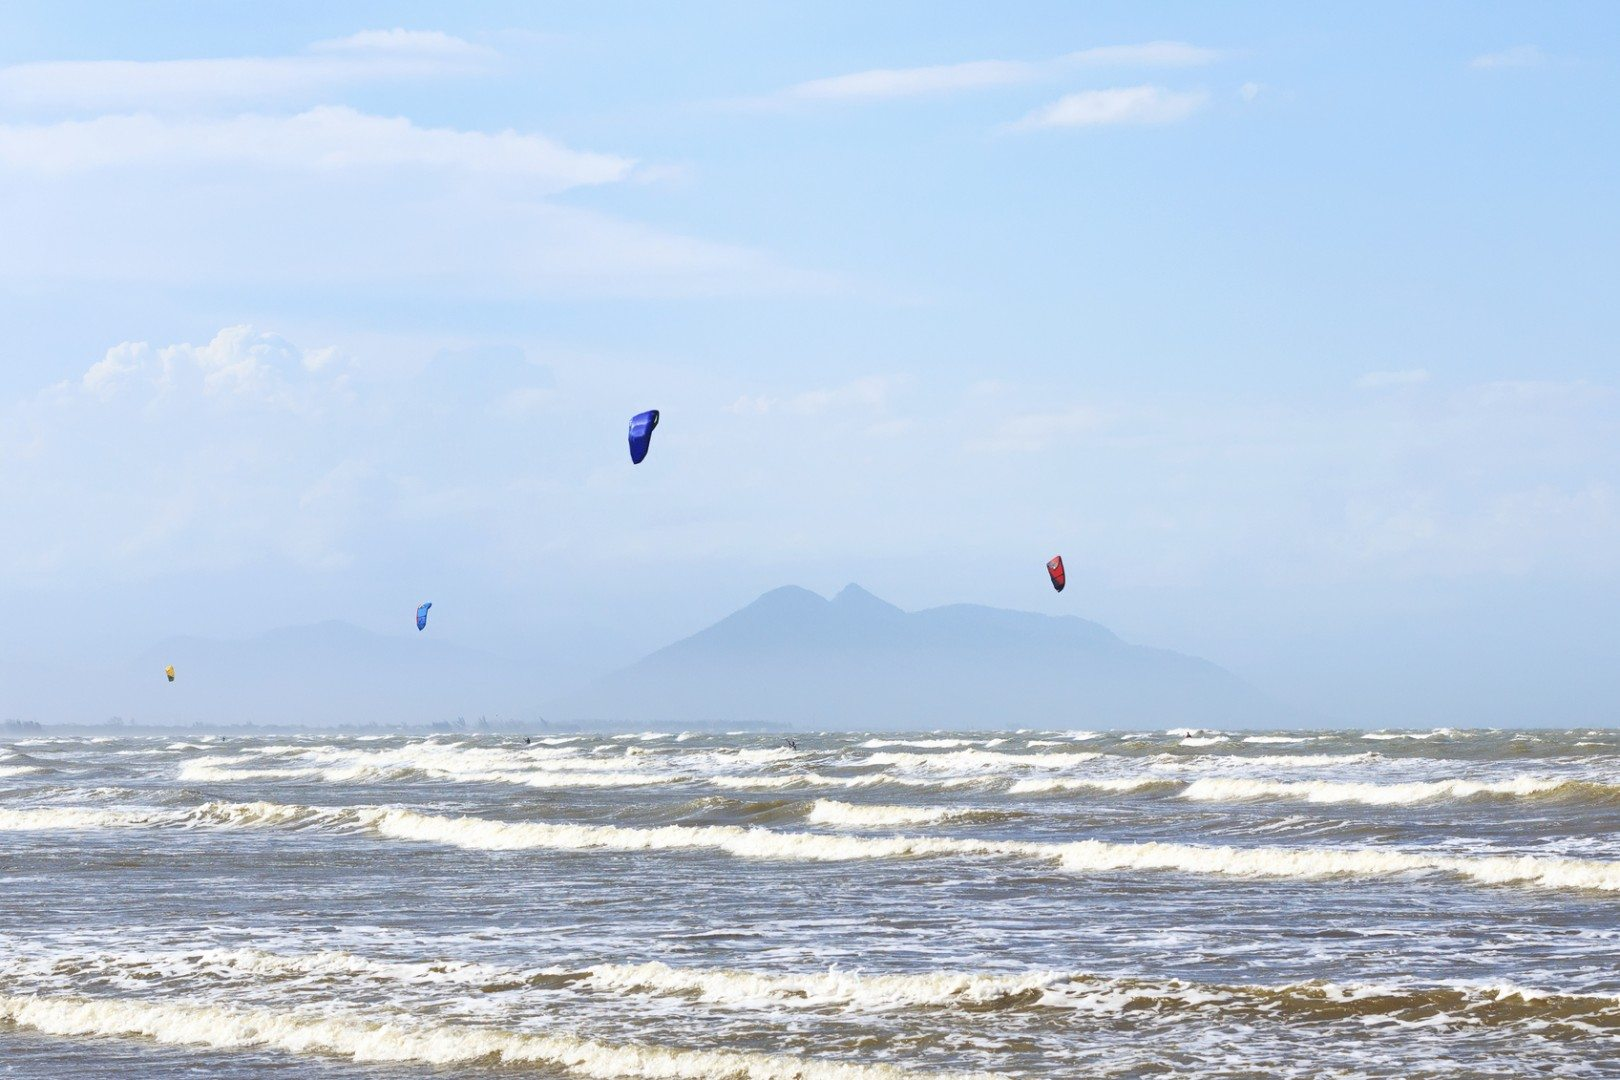 Kitesurfing-on-beach-Rasa-in-Armacao-dos-Buzios-Brazil-000053055170_Medium